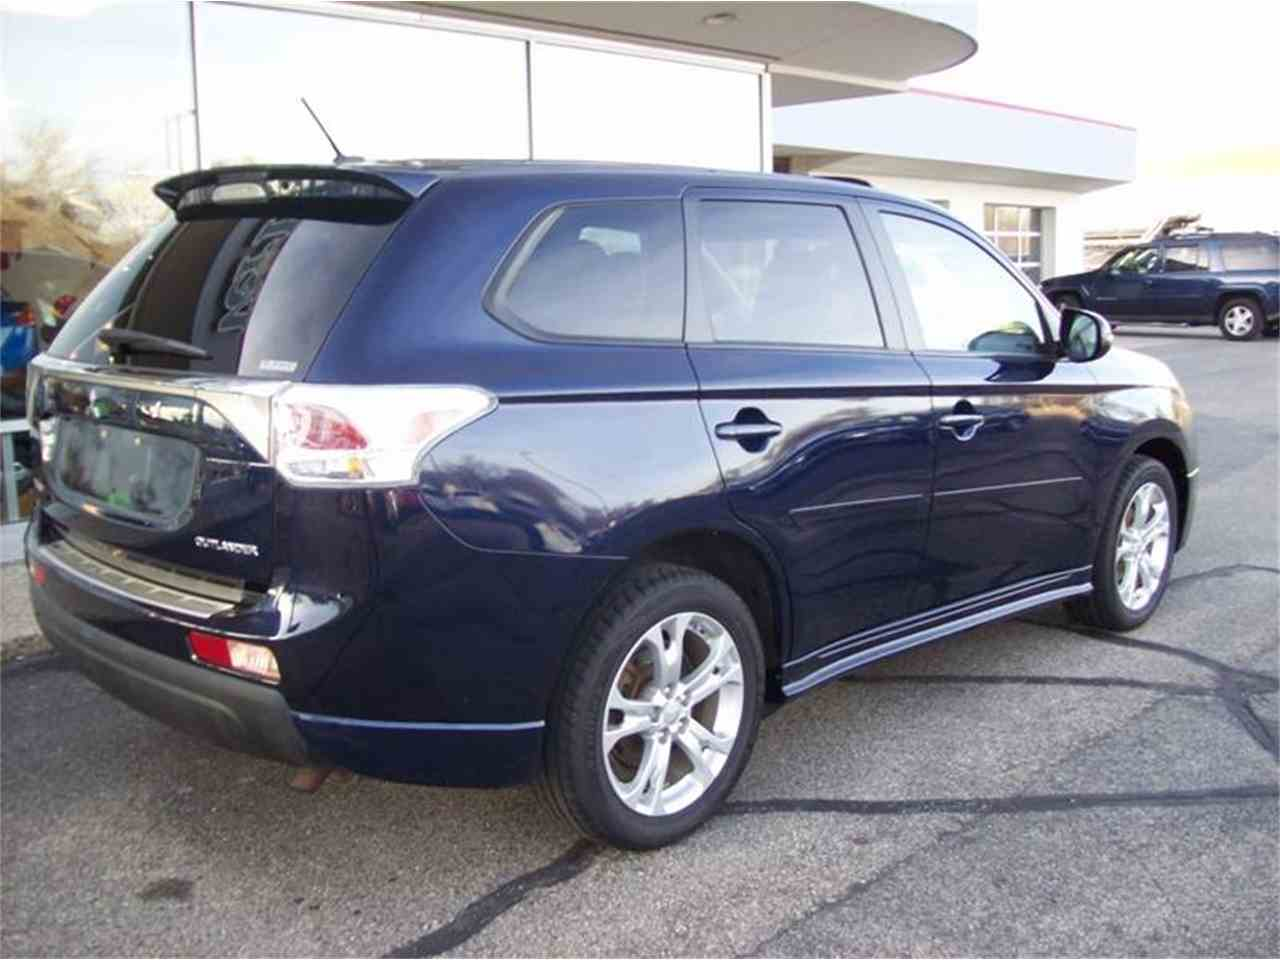 Large Picture of '14 Outlander located in Holland Michigan - $17,495.00 Offered by Verhage Mitsubishi - MB5J